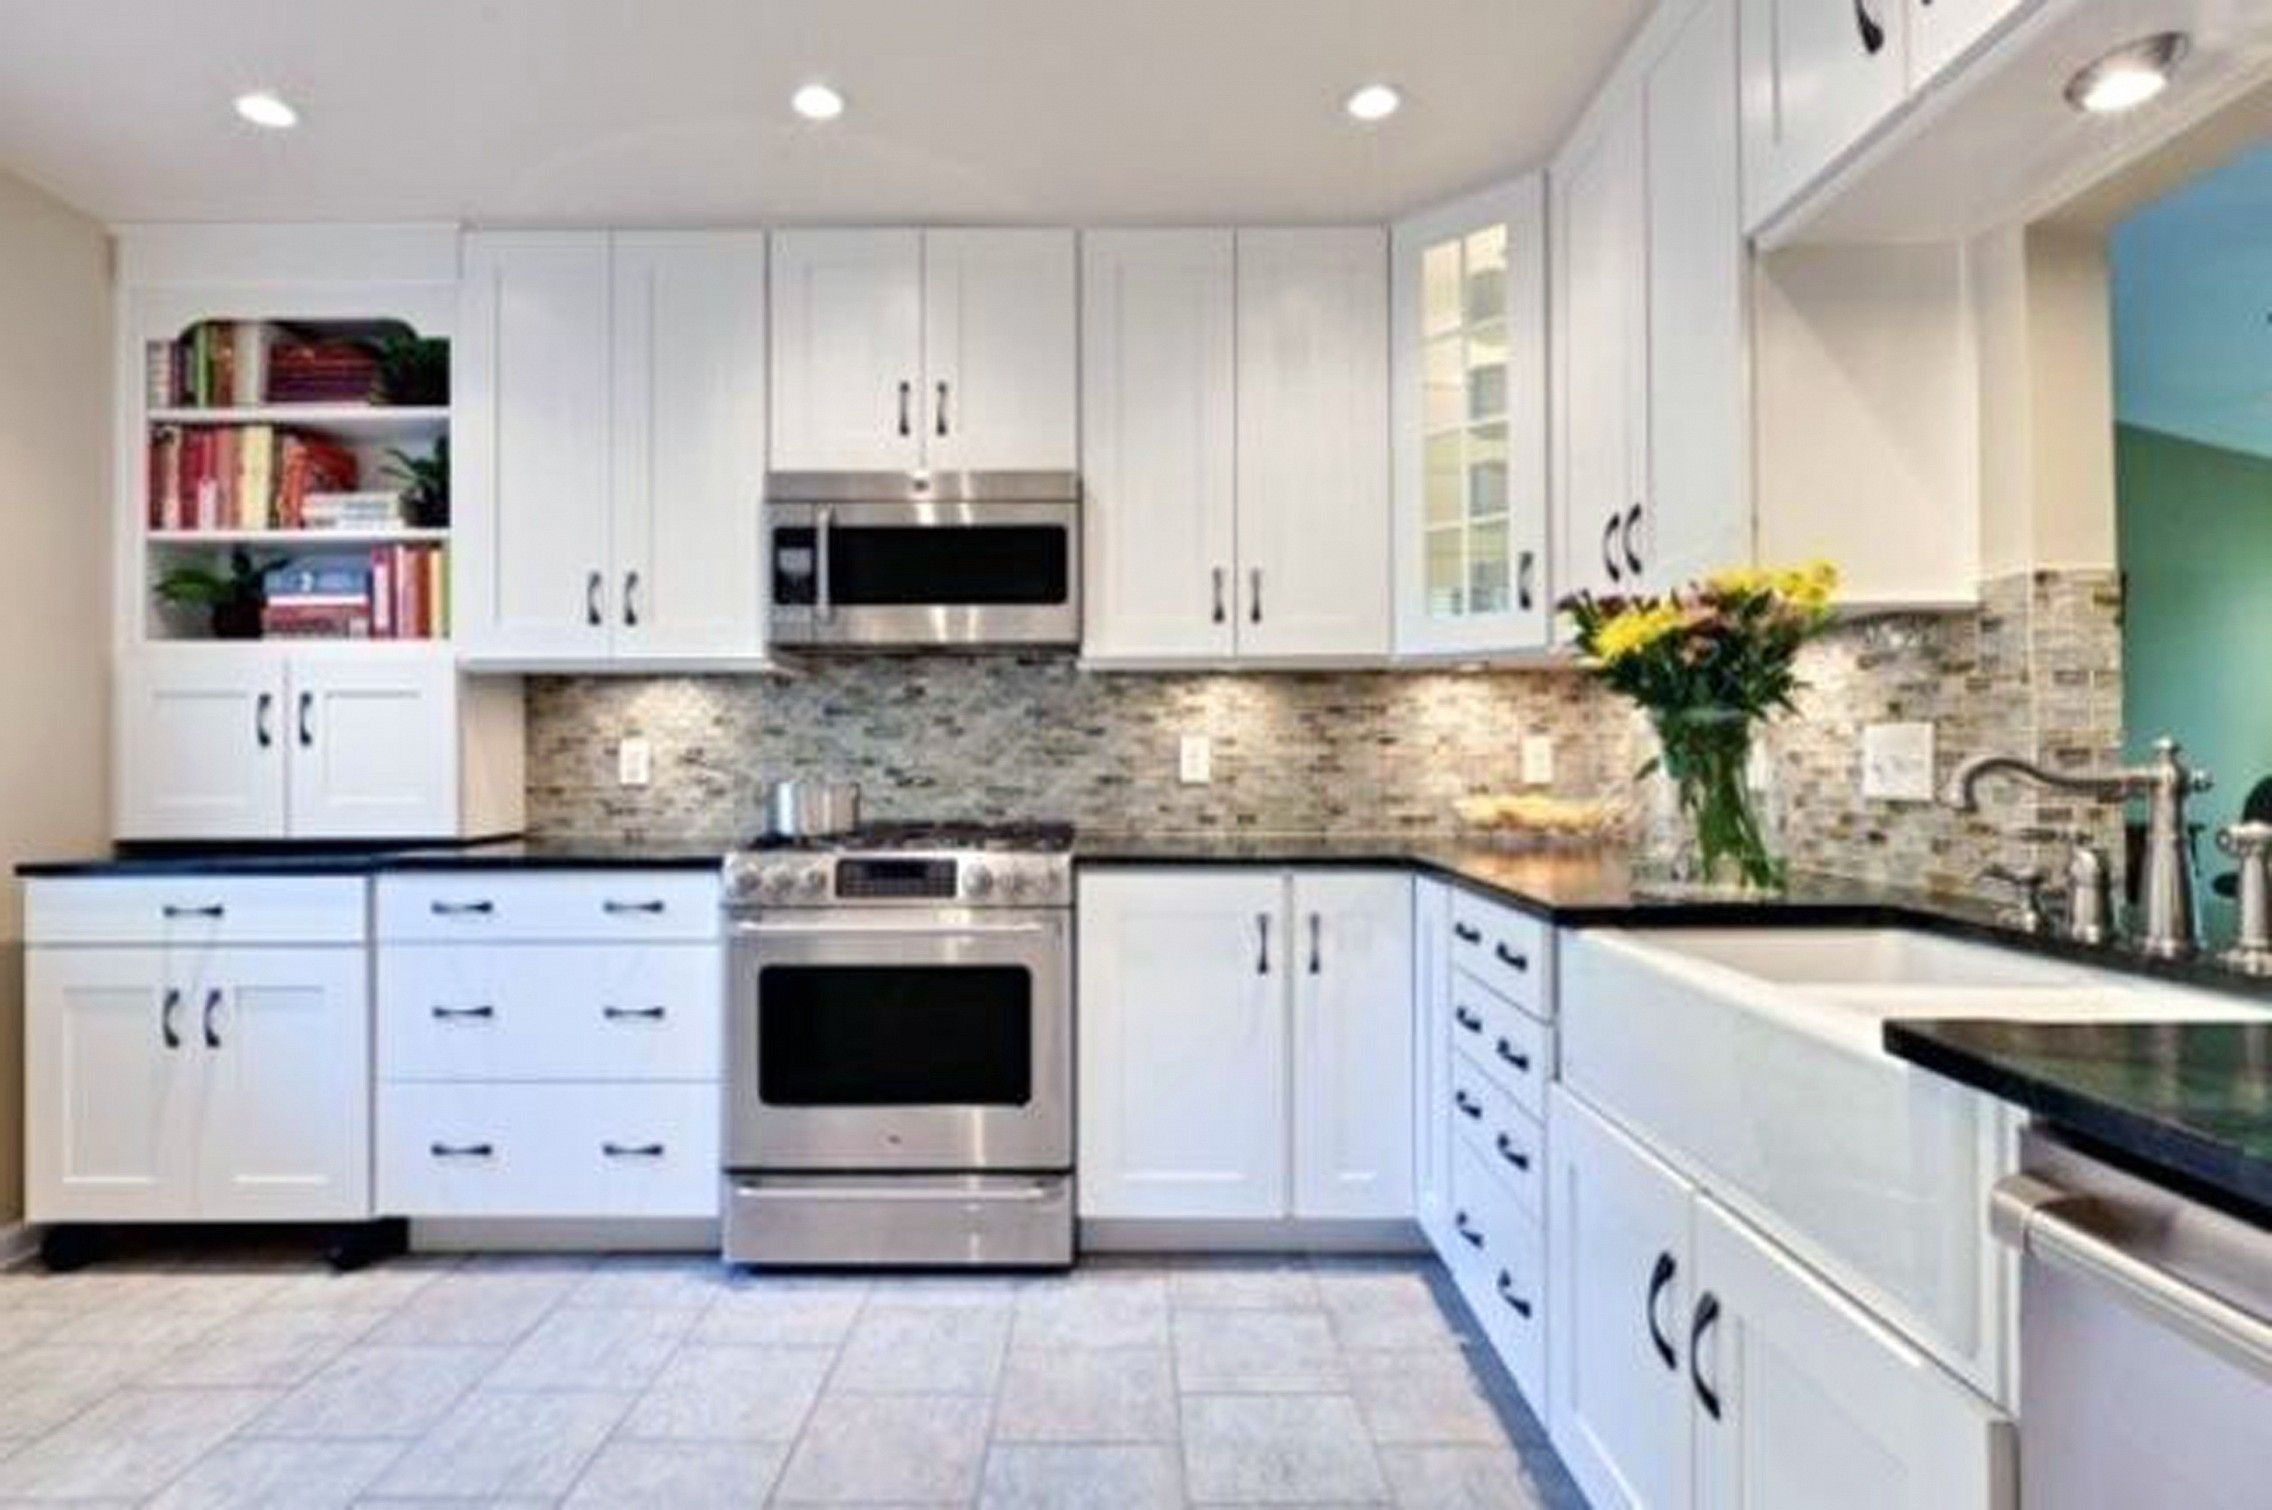 New White Cabinets with Black Granite